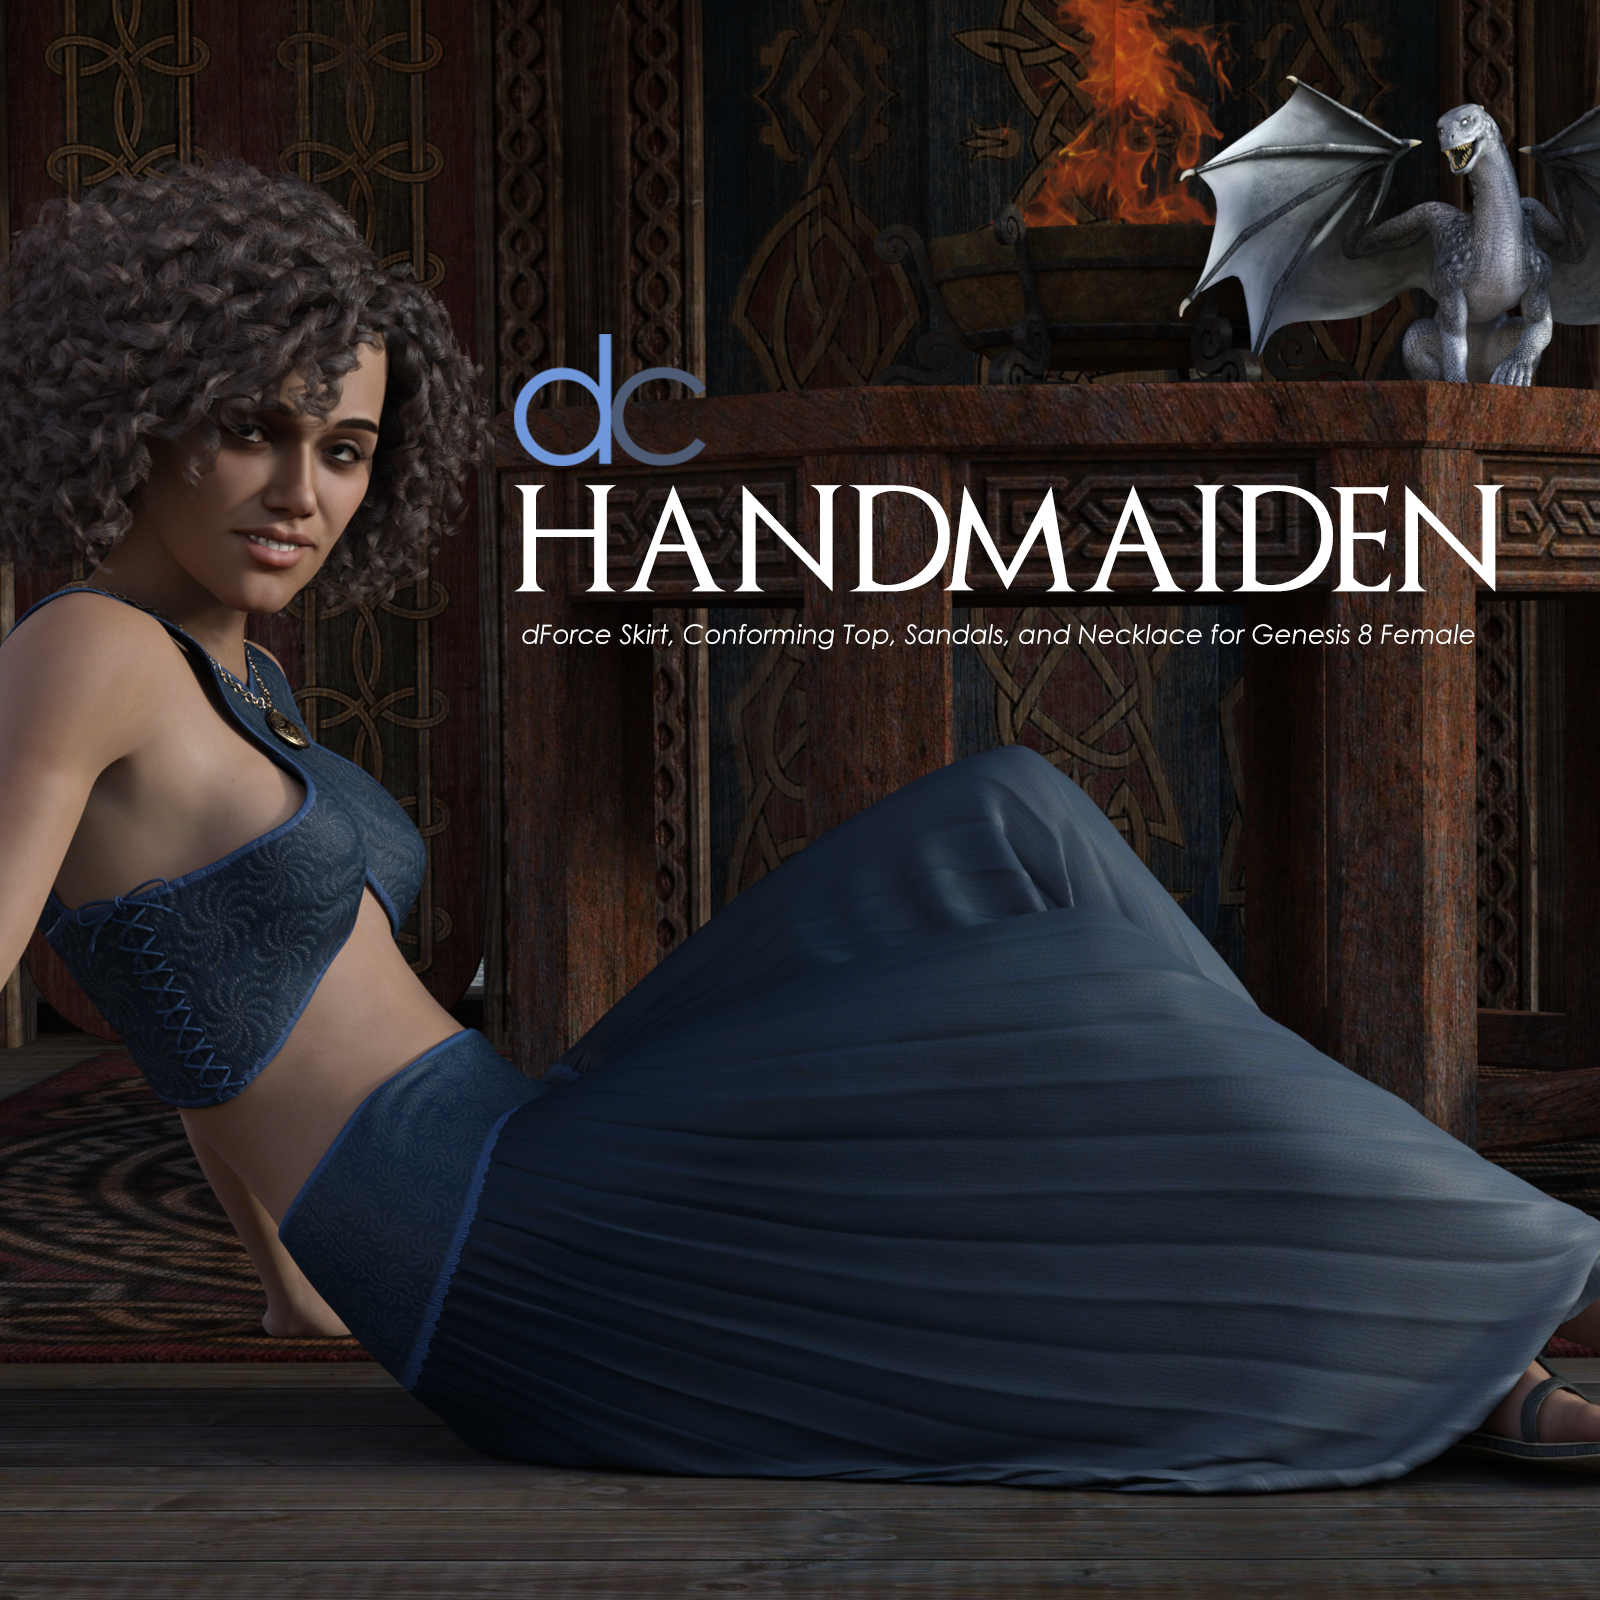 DC-HandMaiden for Genesis 8 Female